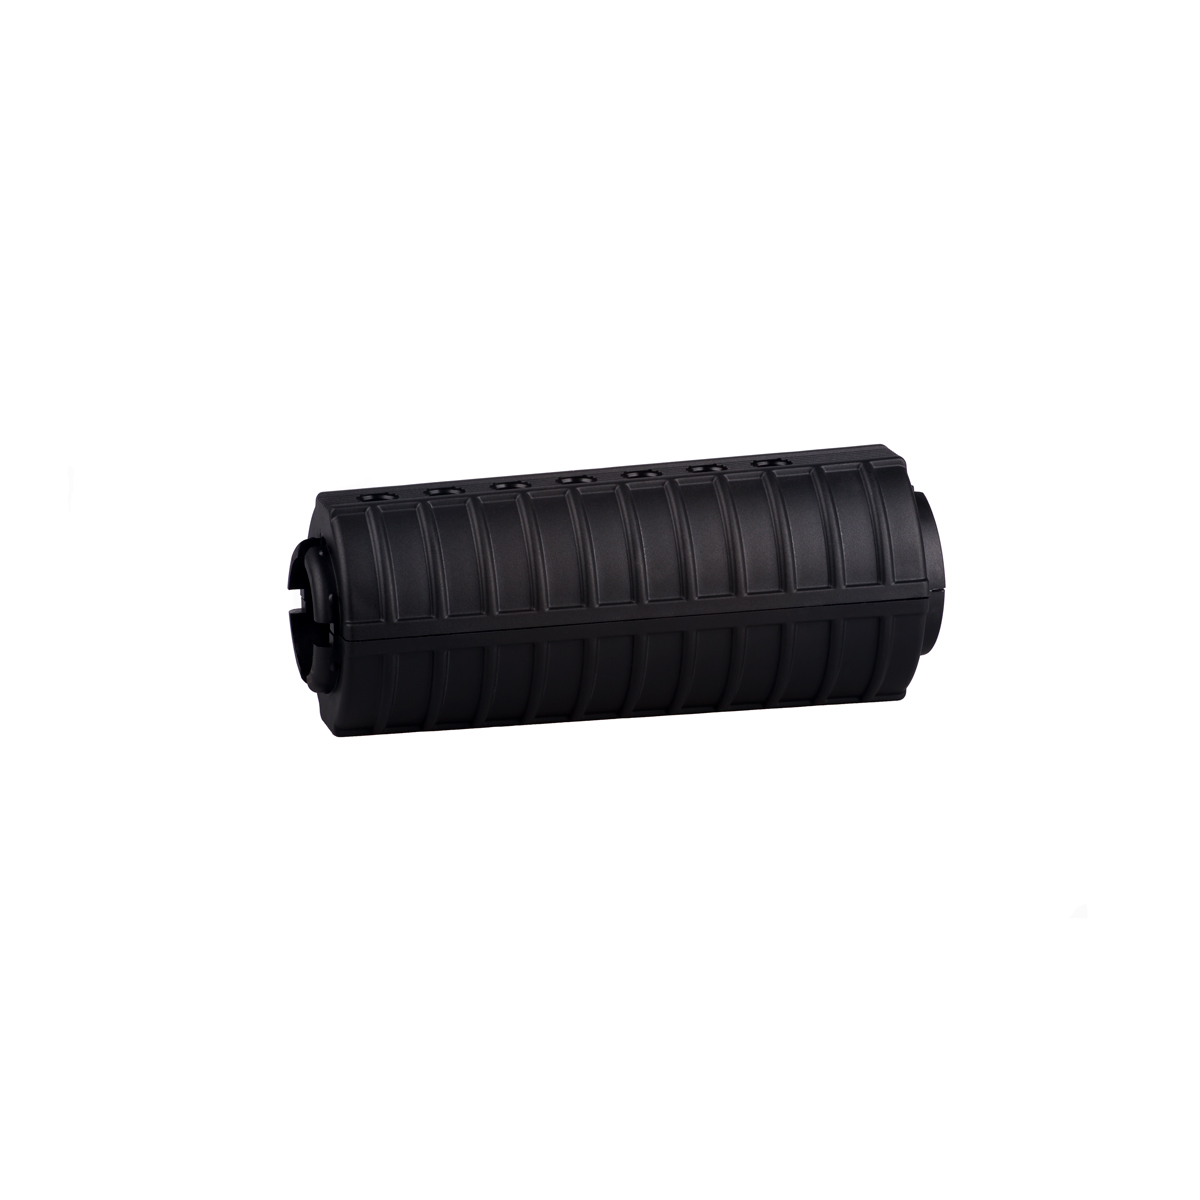 M4 Double Heat Shield Handguard set